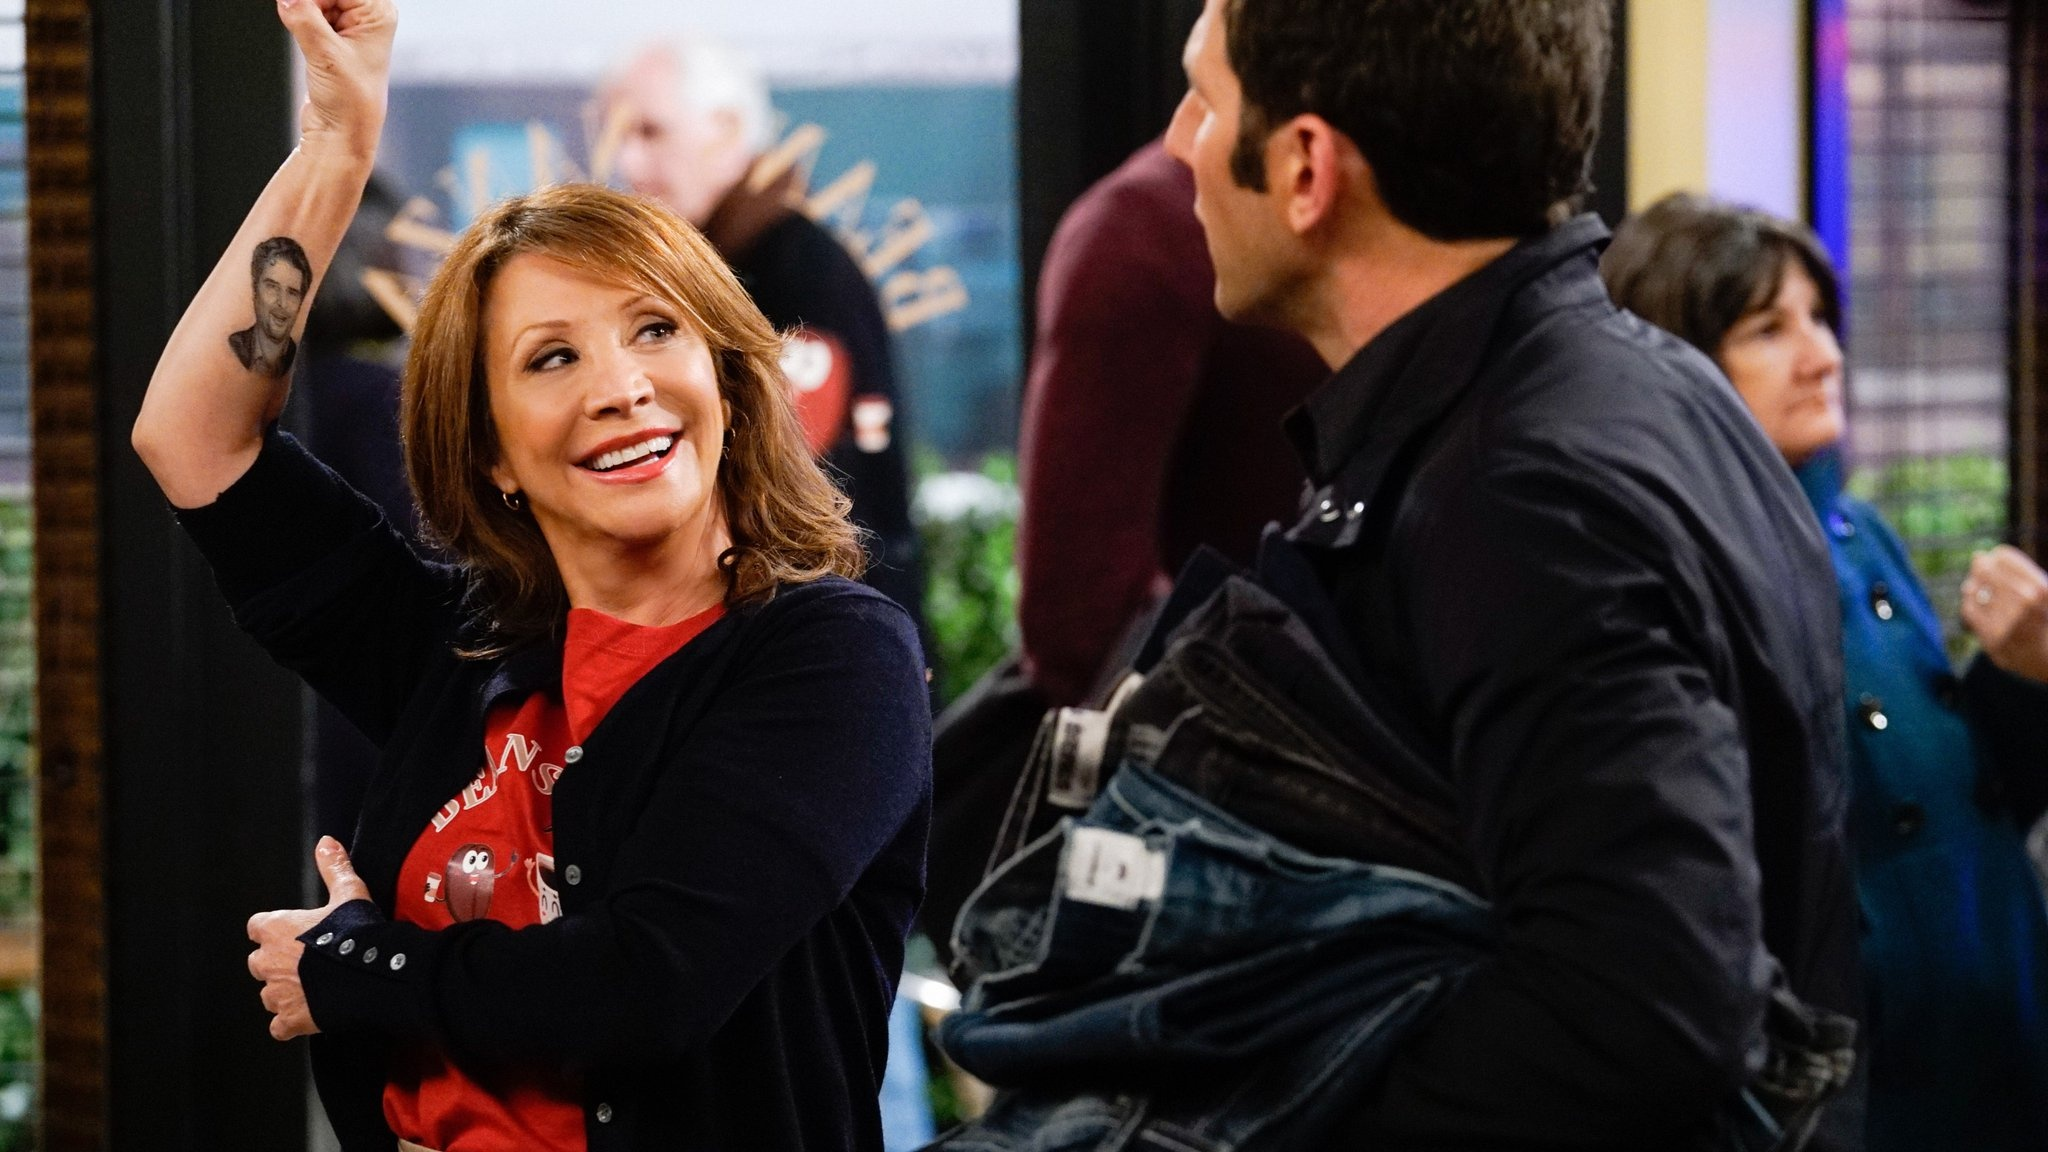 It Is No Secret That I Do Not Hold CBSu0027s Freshman Comedy Series 9JKL In  High Regard. So It Is With A Very Low Bar That I Tell You This Episode Was  ...